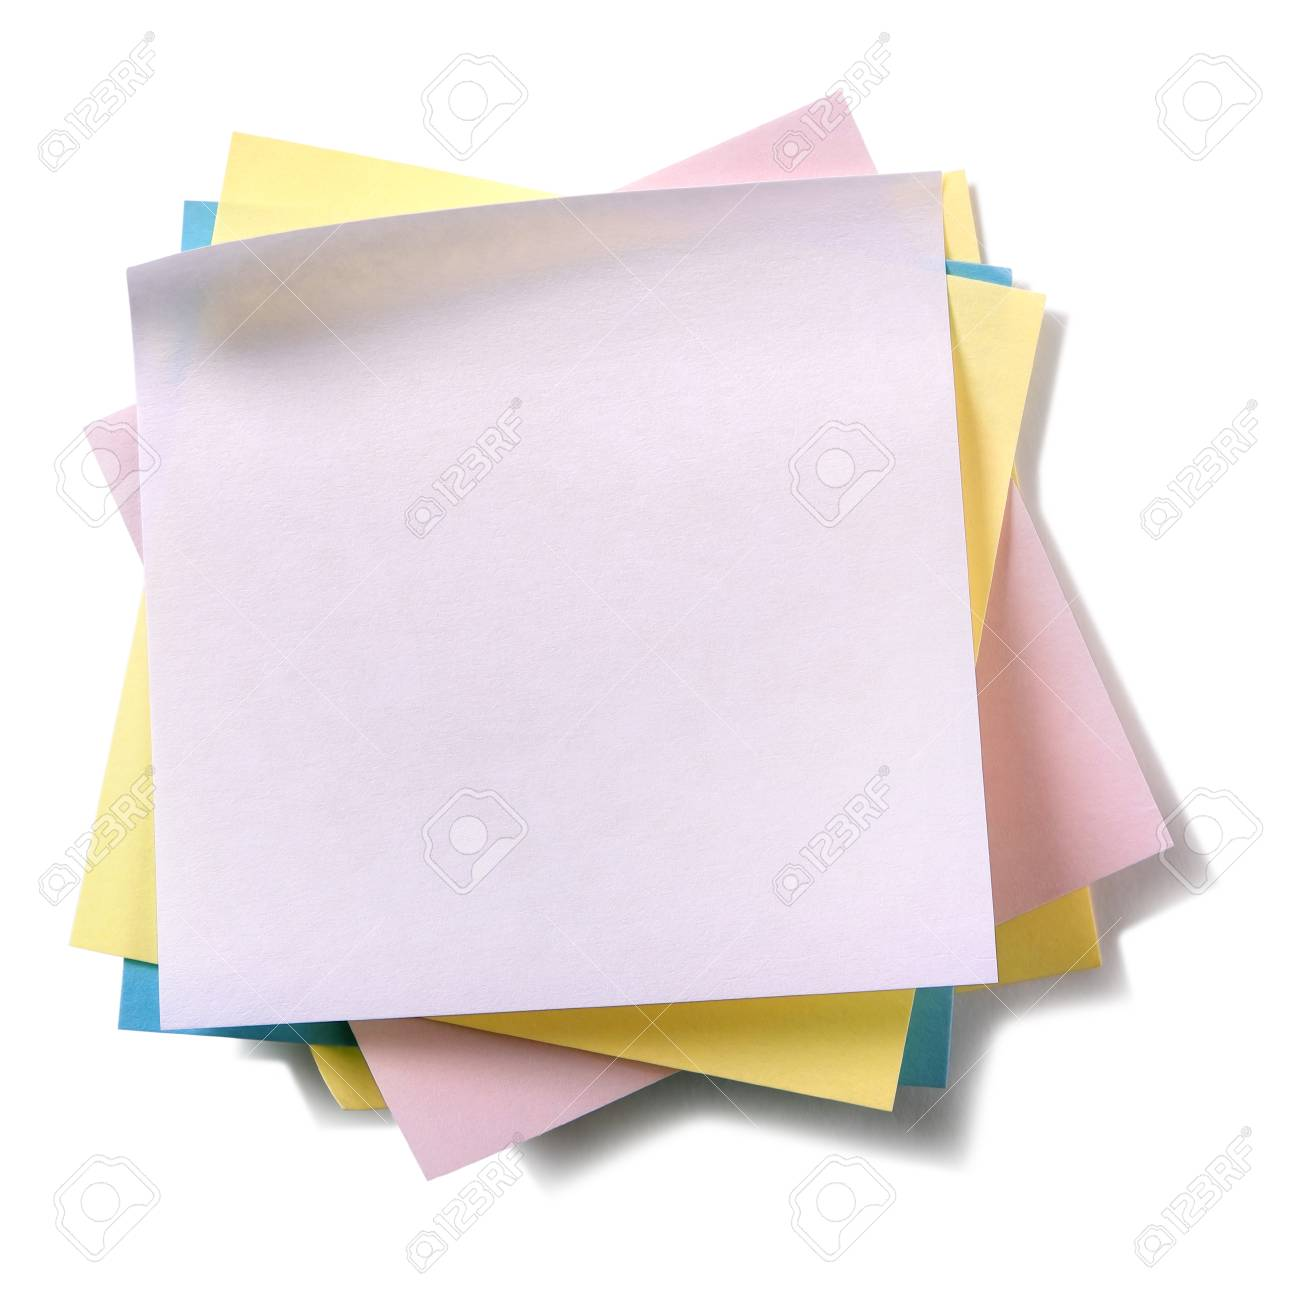 Untidy pile various colors sticky post notes isolated on white - 96048103